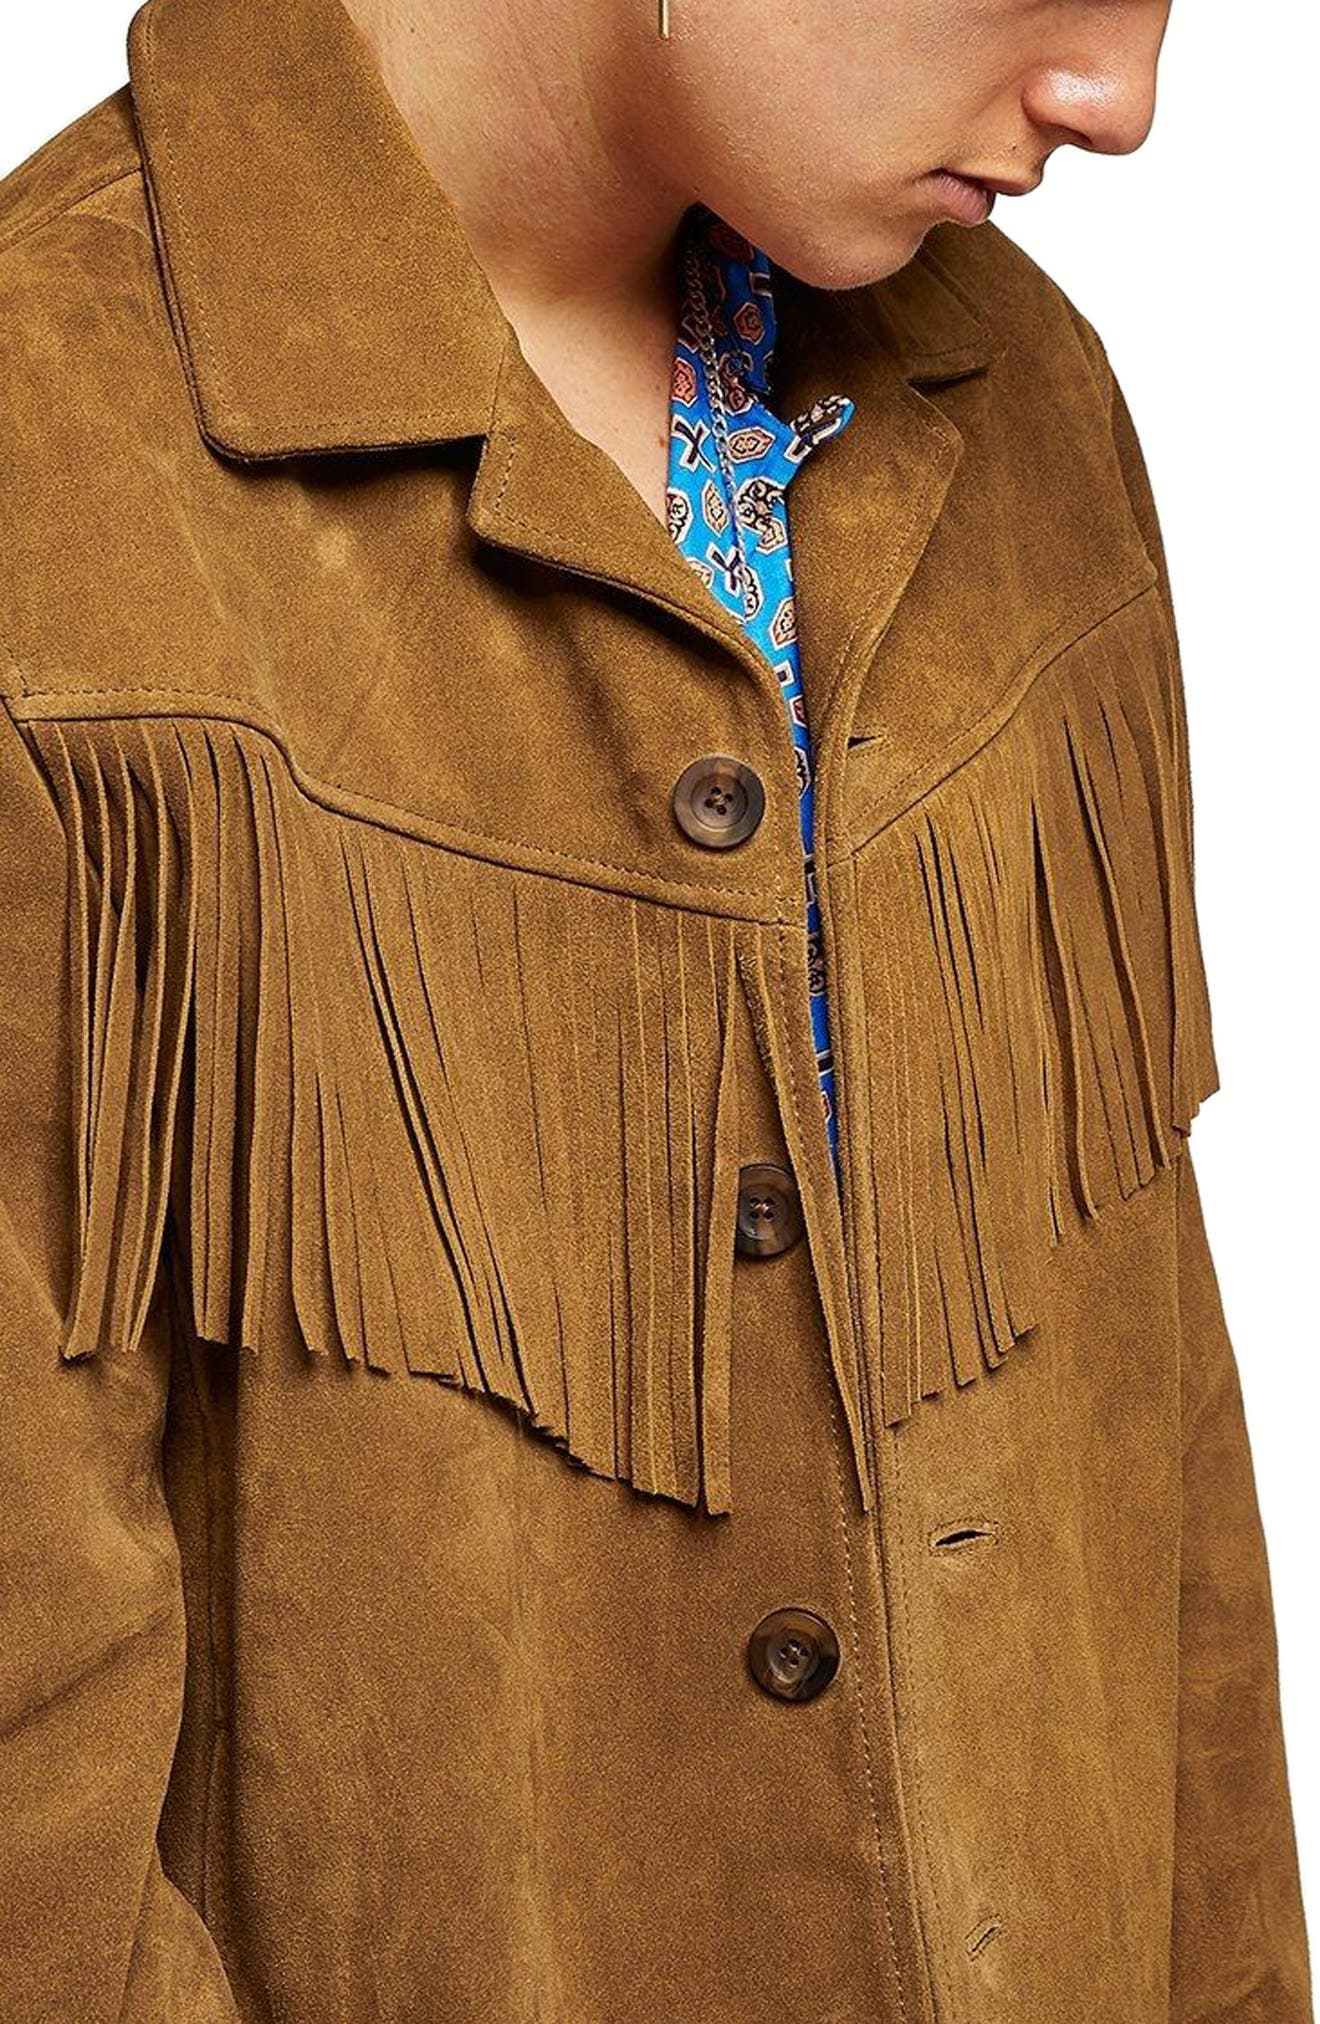 Fringed Suede Western Jacket,                         Main,                         color, Brown